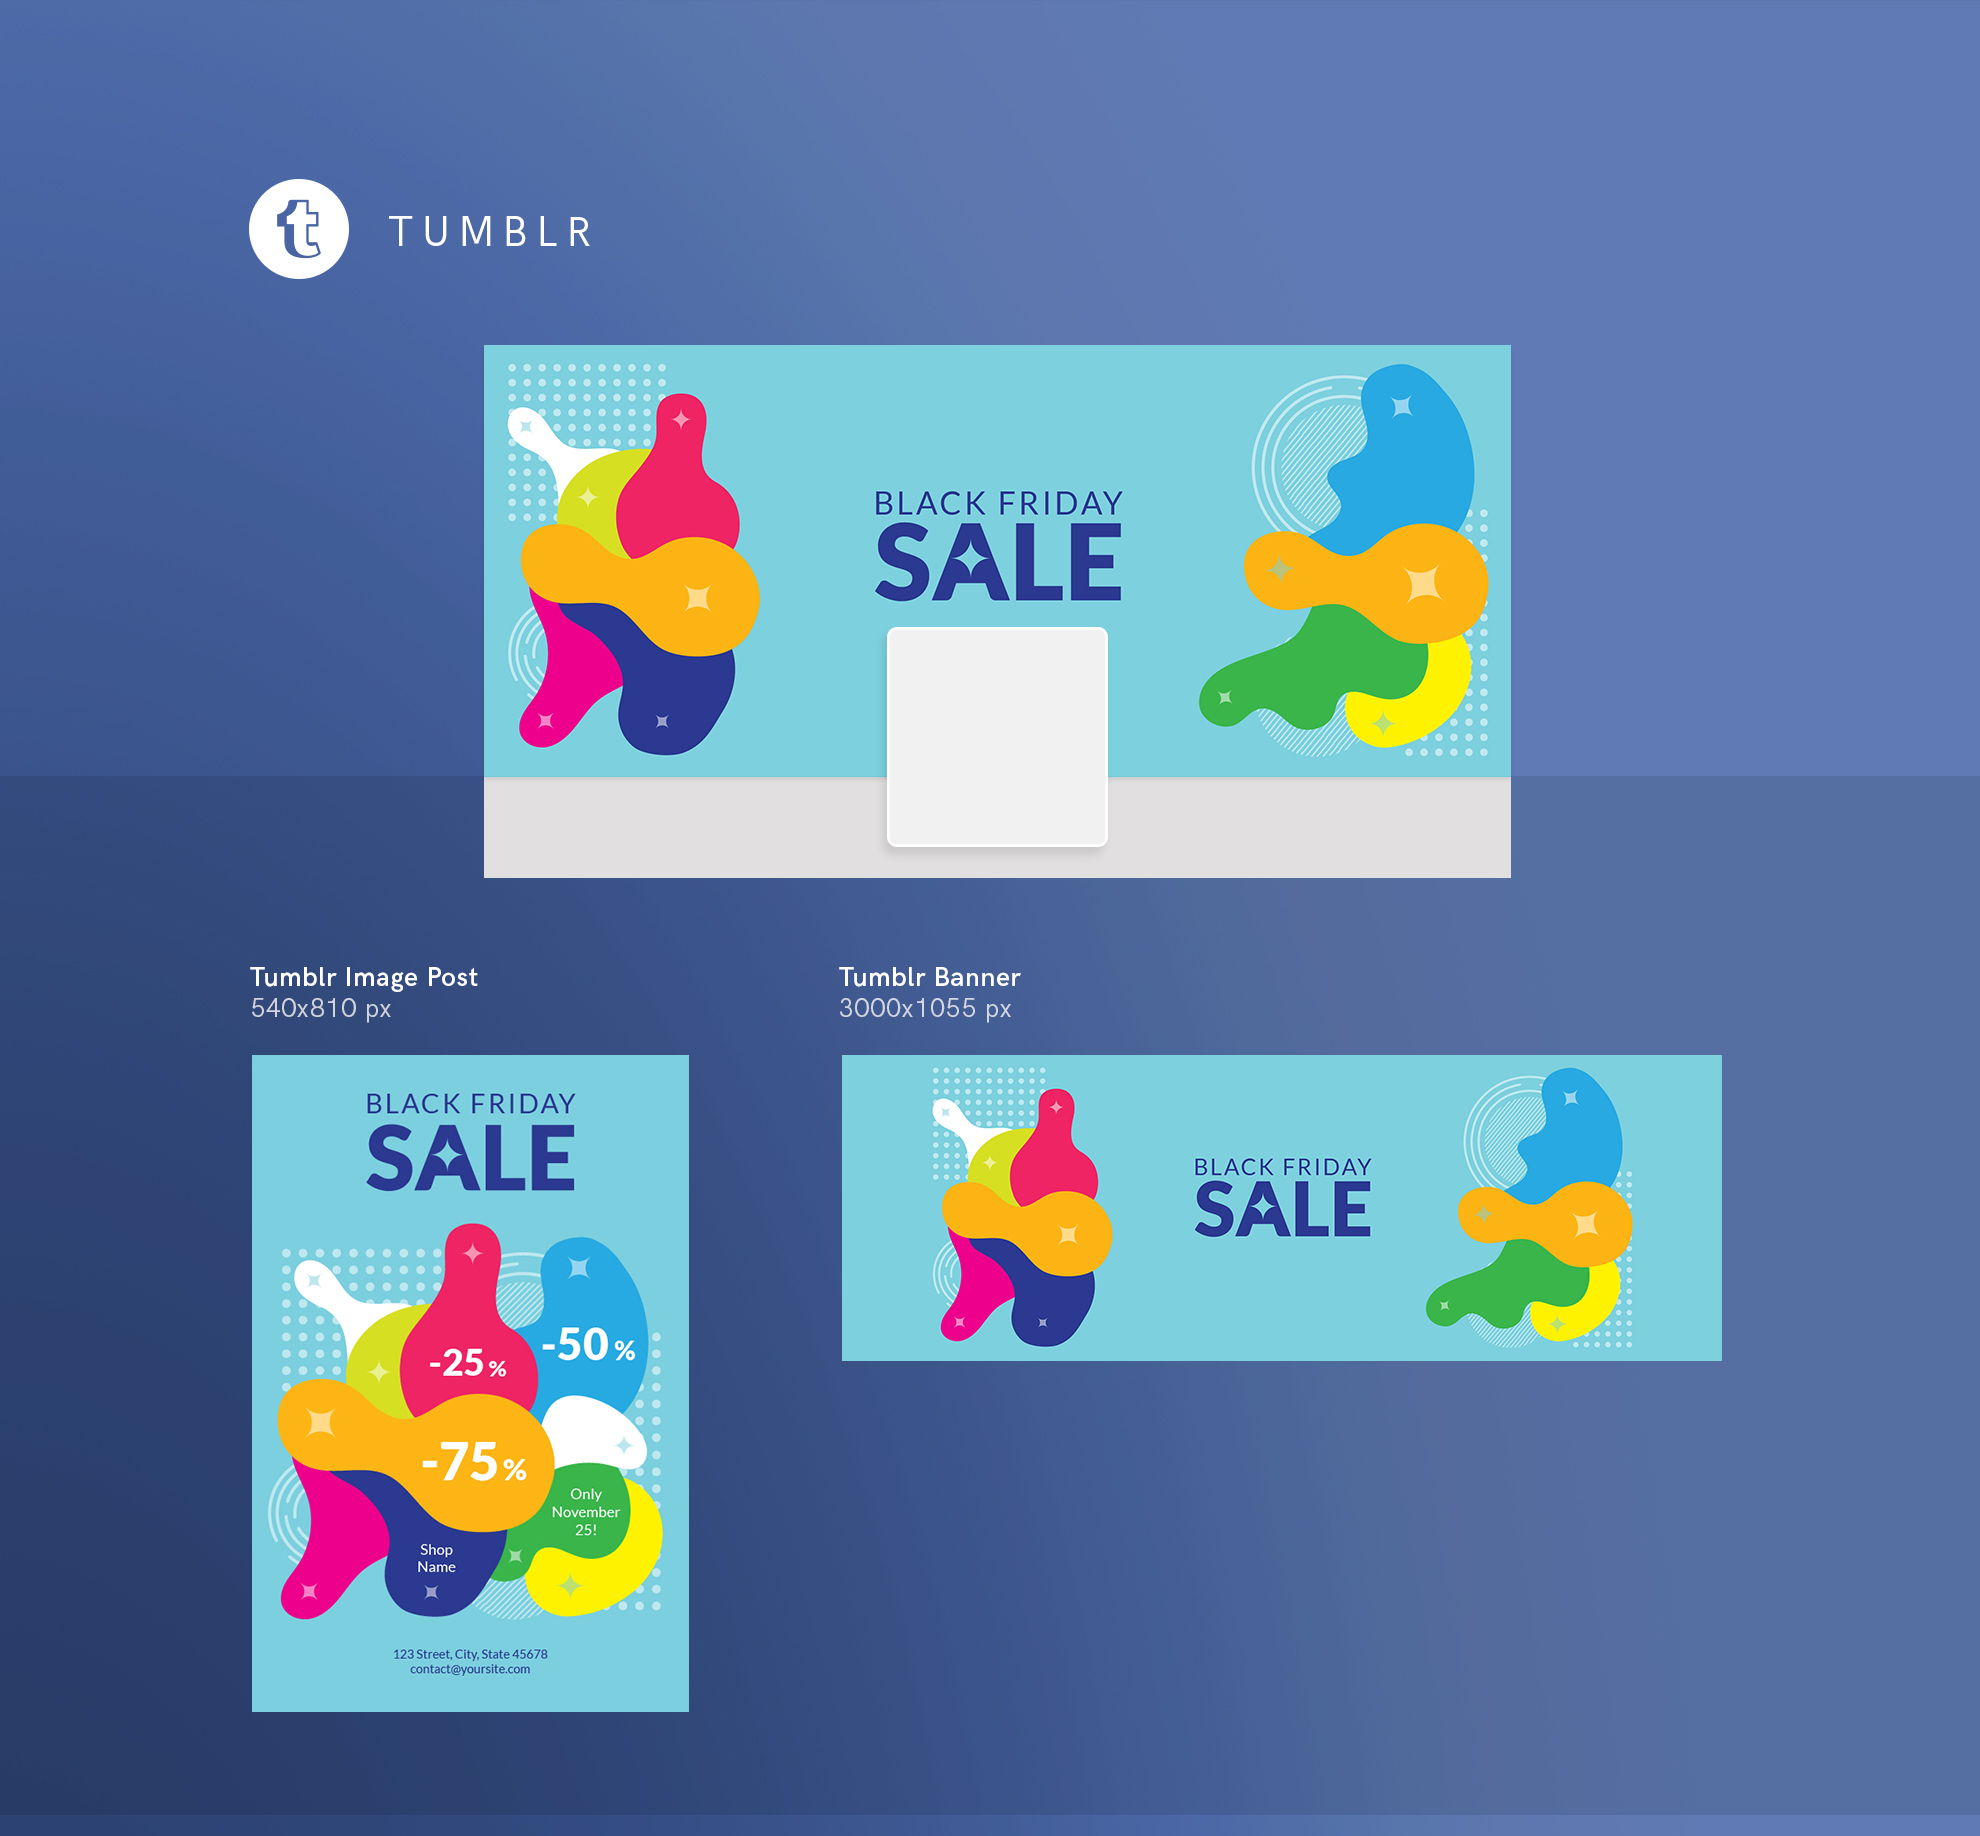 Black Friday Sale Design Templates Bundle example image 13